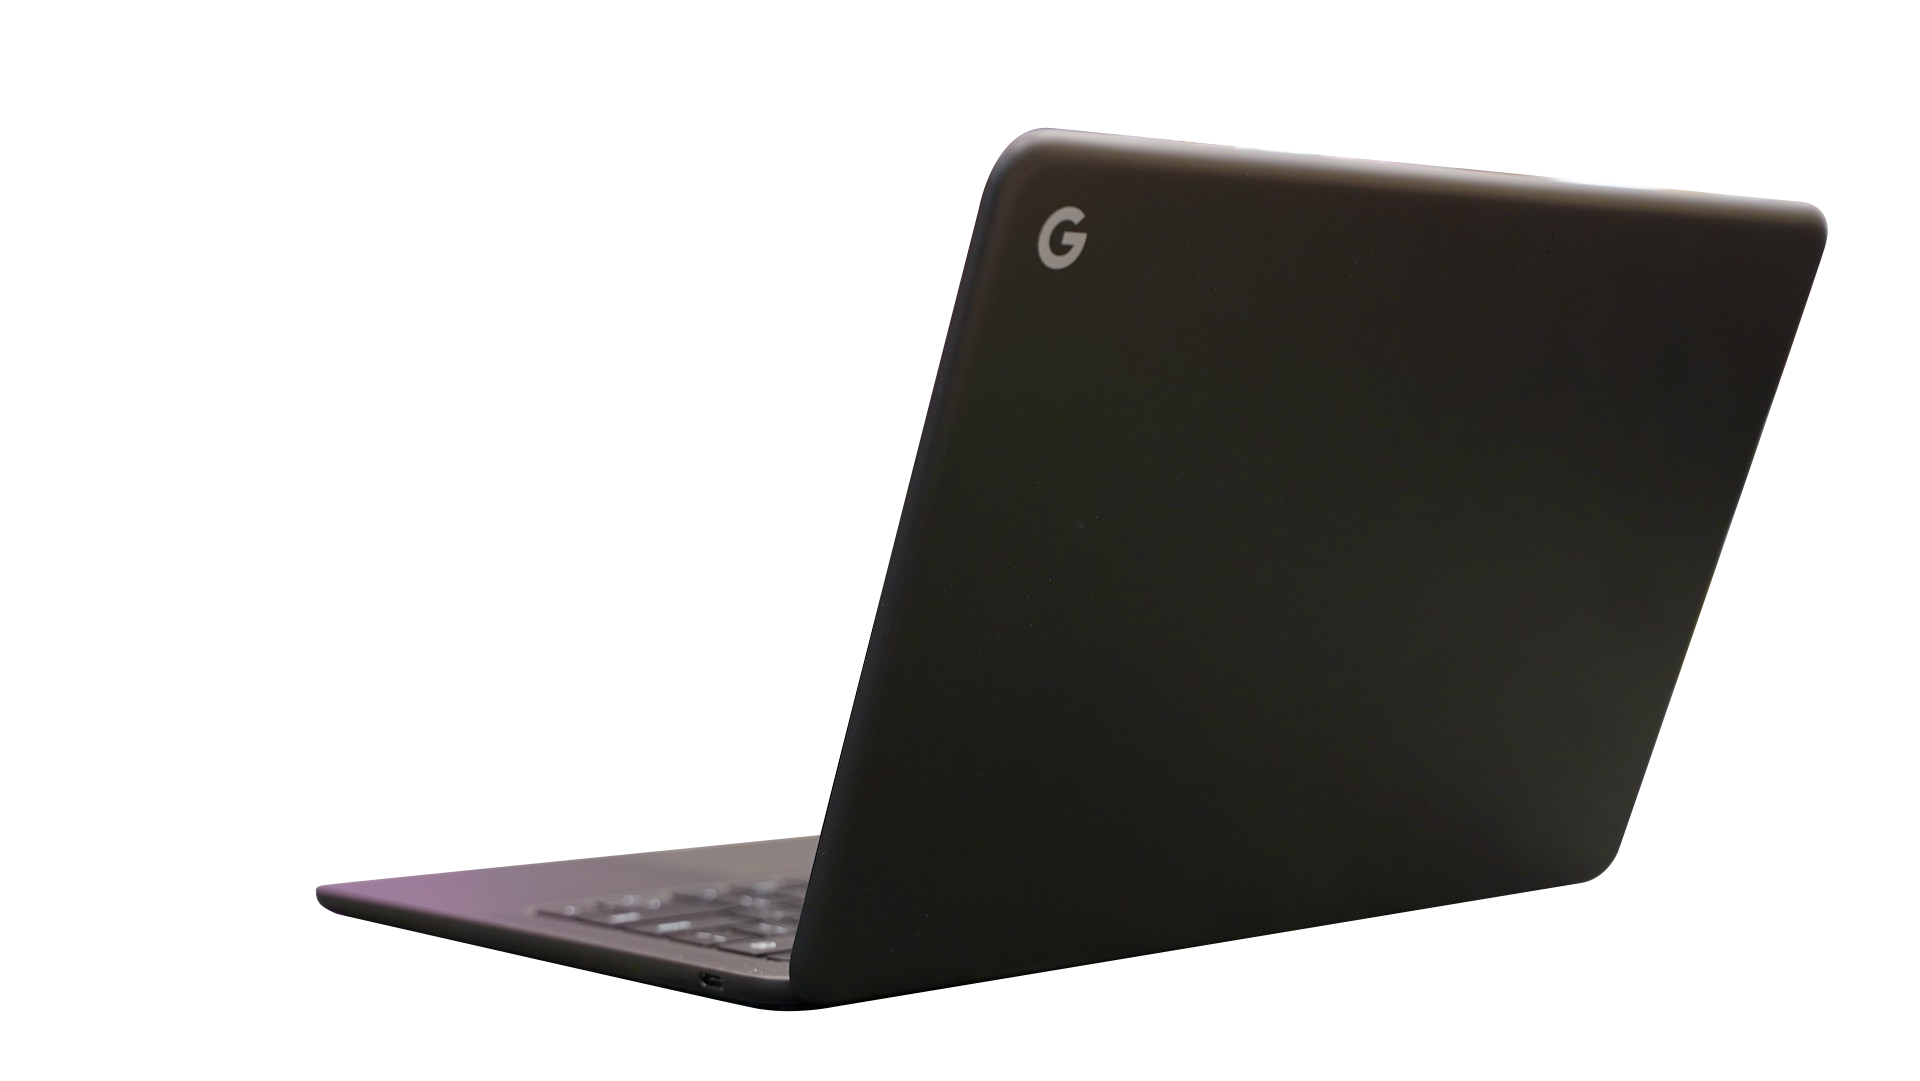 Google ChromeBook laptop - Black